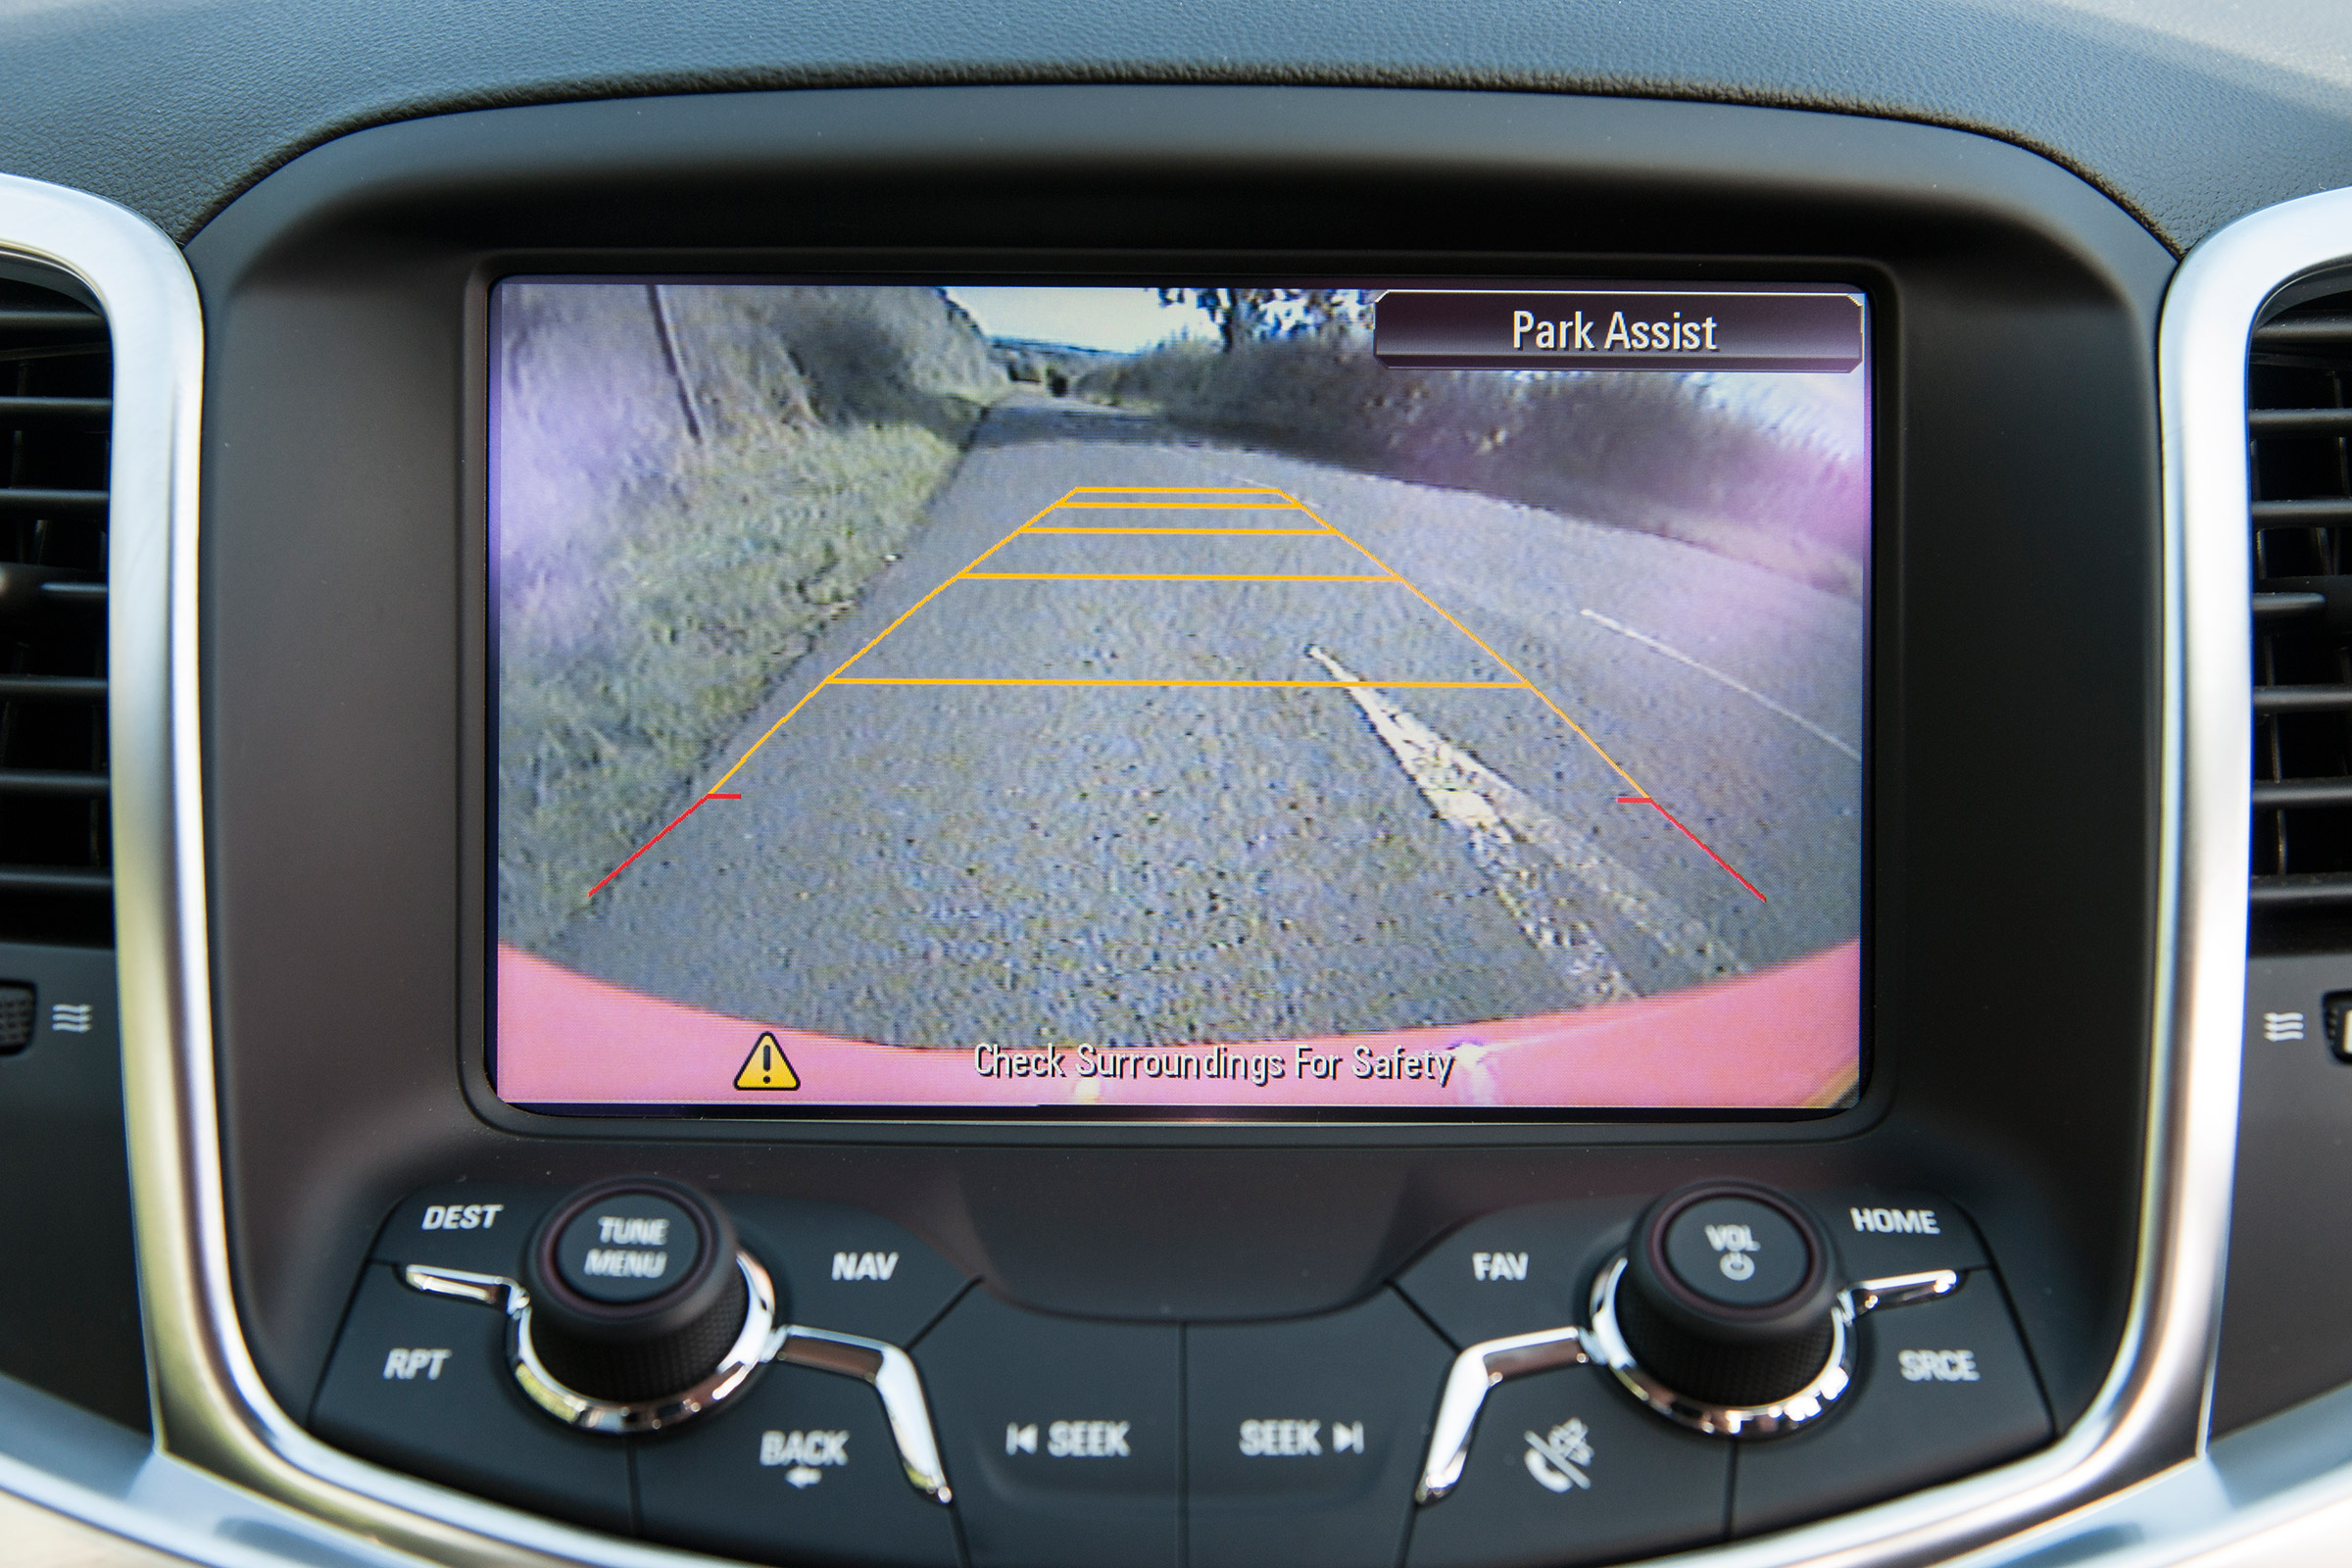 2017 Vauxhall VXR8 Maloo Interior View Rear Parking Camera (Photo 21 of 26)